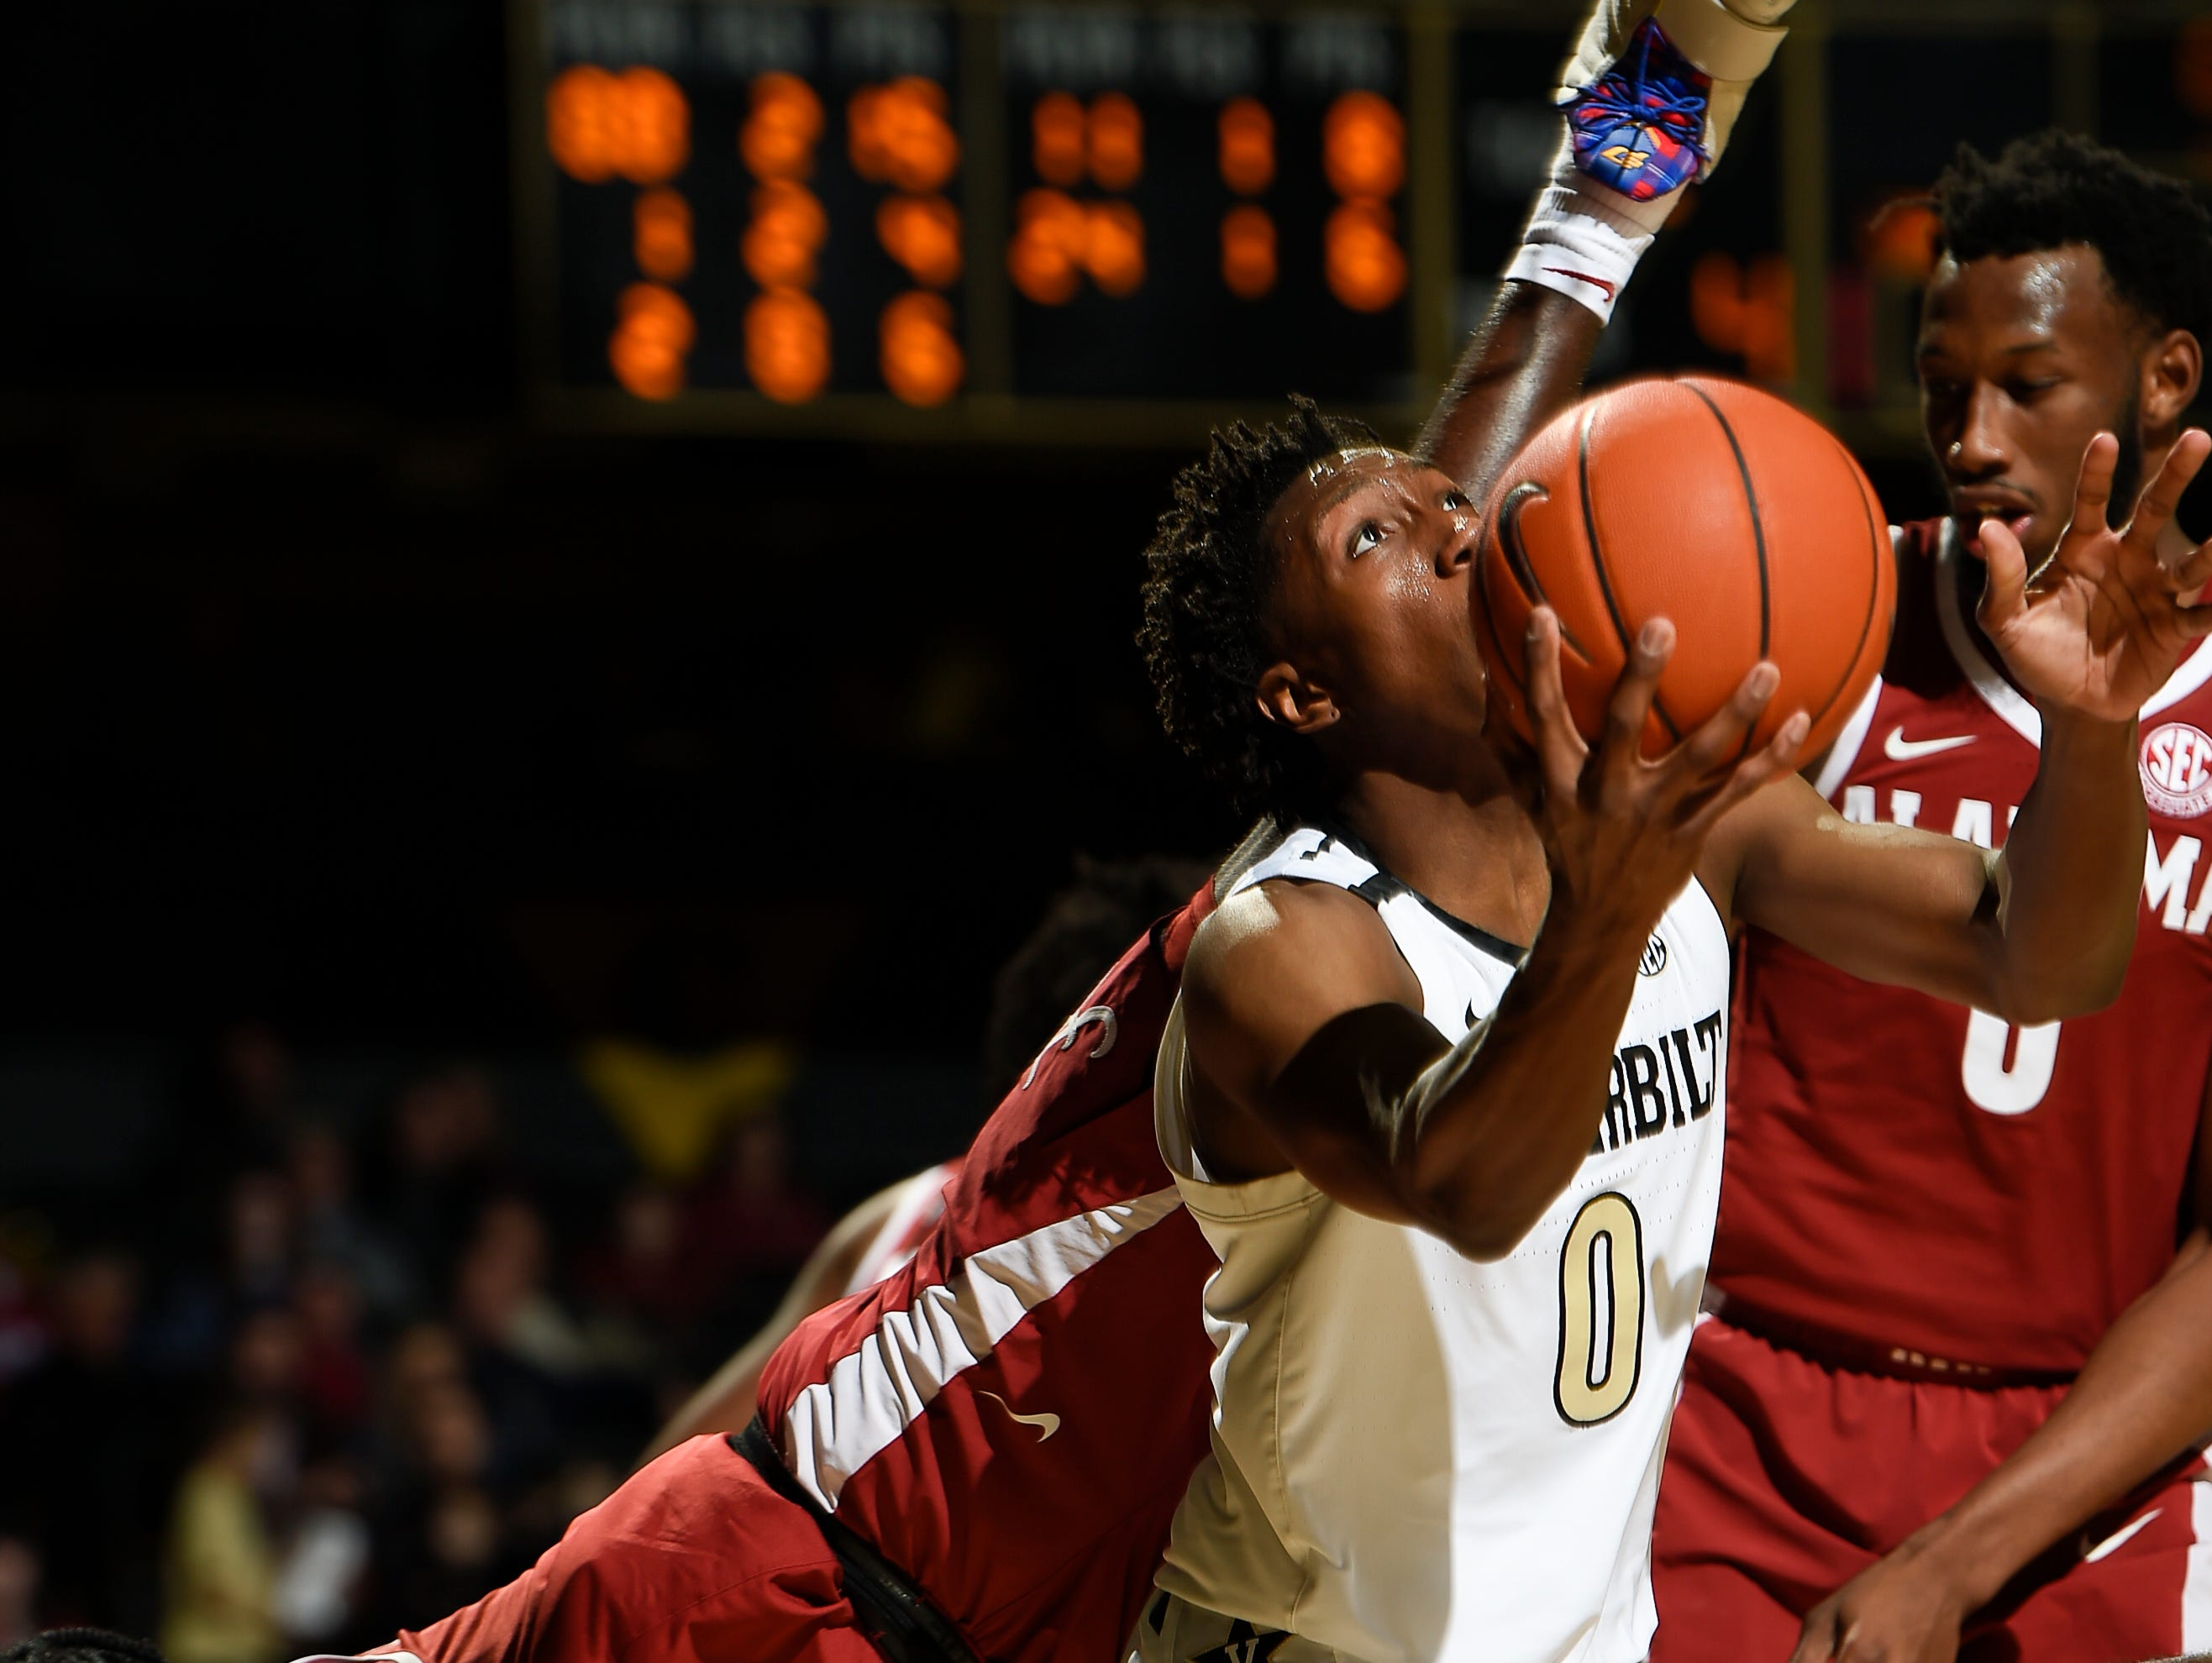 Vanderbilt guard Saben Lee (0) shoots as Alabama guard Kira Lewis Jr. (2) falls to the court during the second half at Memorial Gym Saturday Feb. 9, 2019 in Nashville, Tenn.